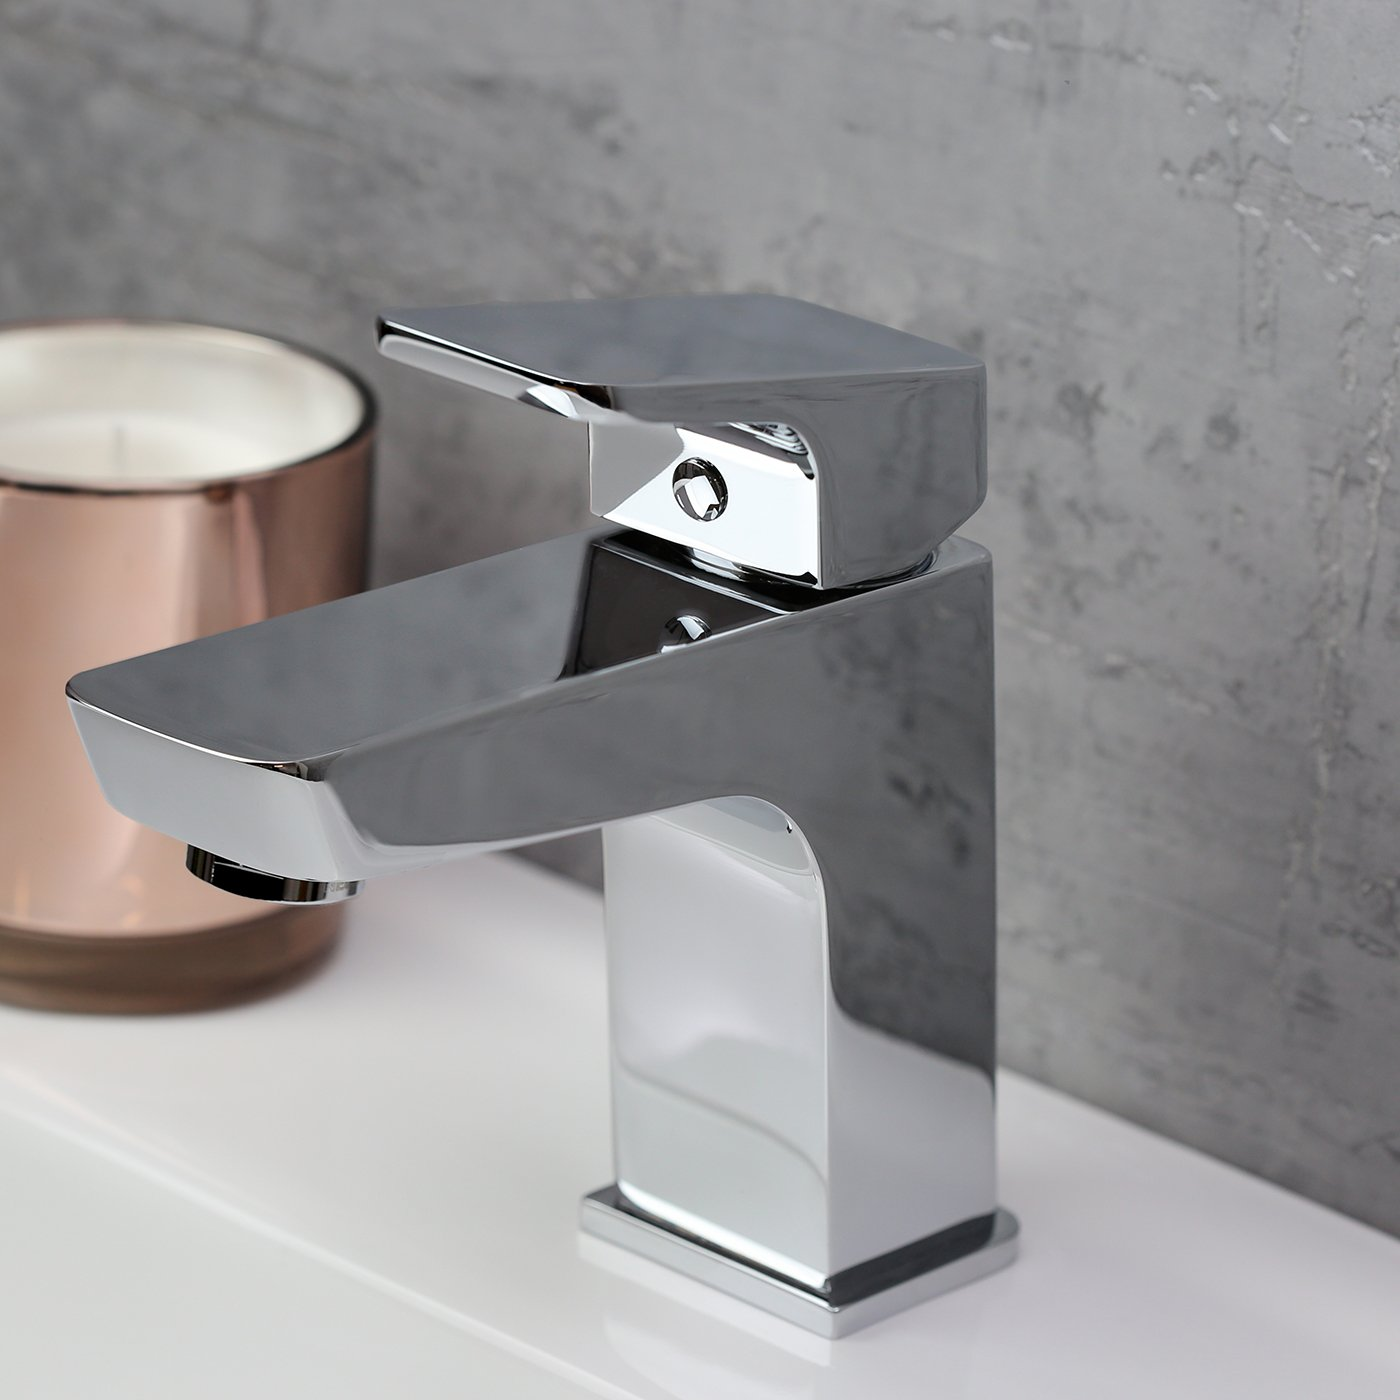 Bristan Vertico Basin Mixer Tap - Chrome